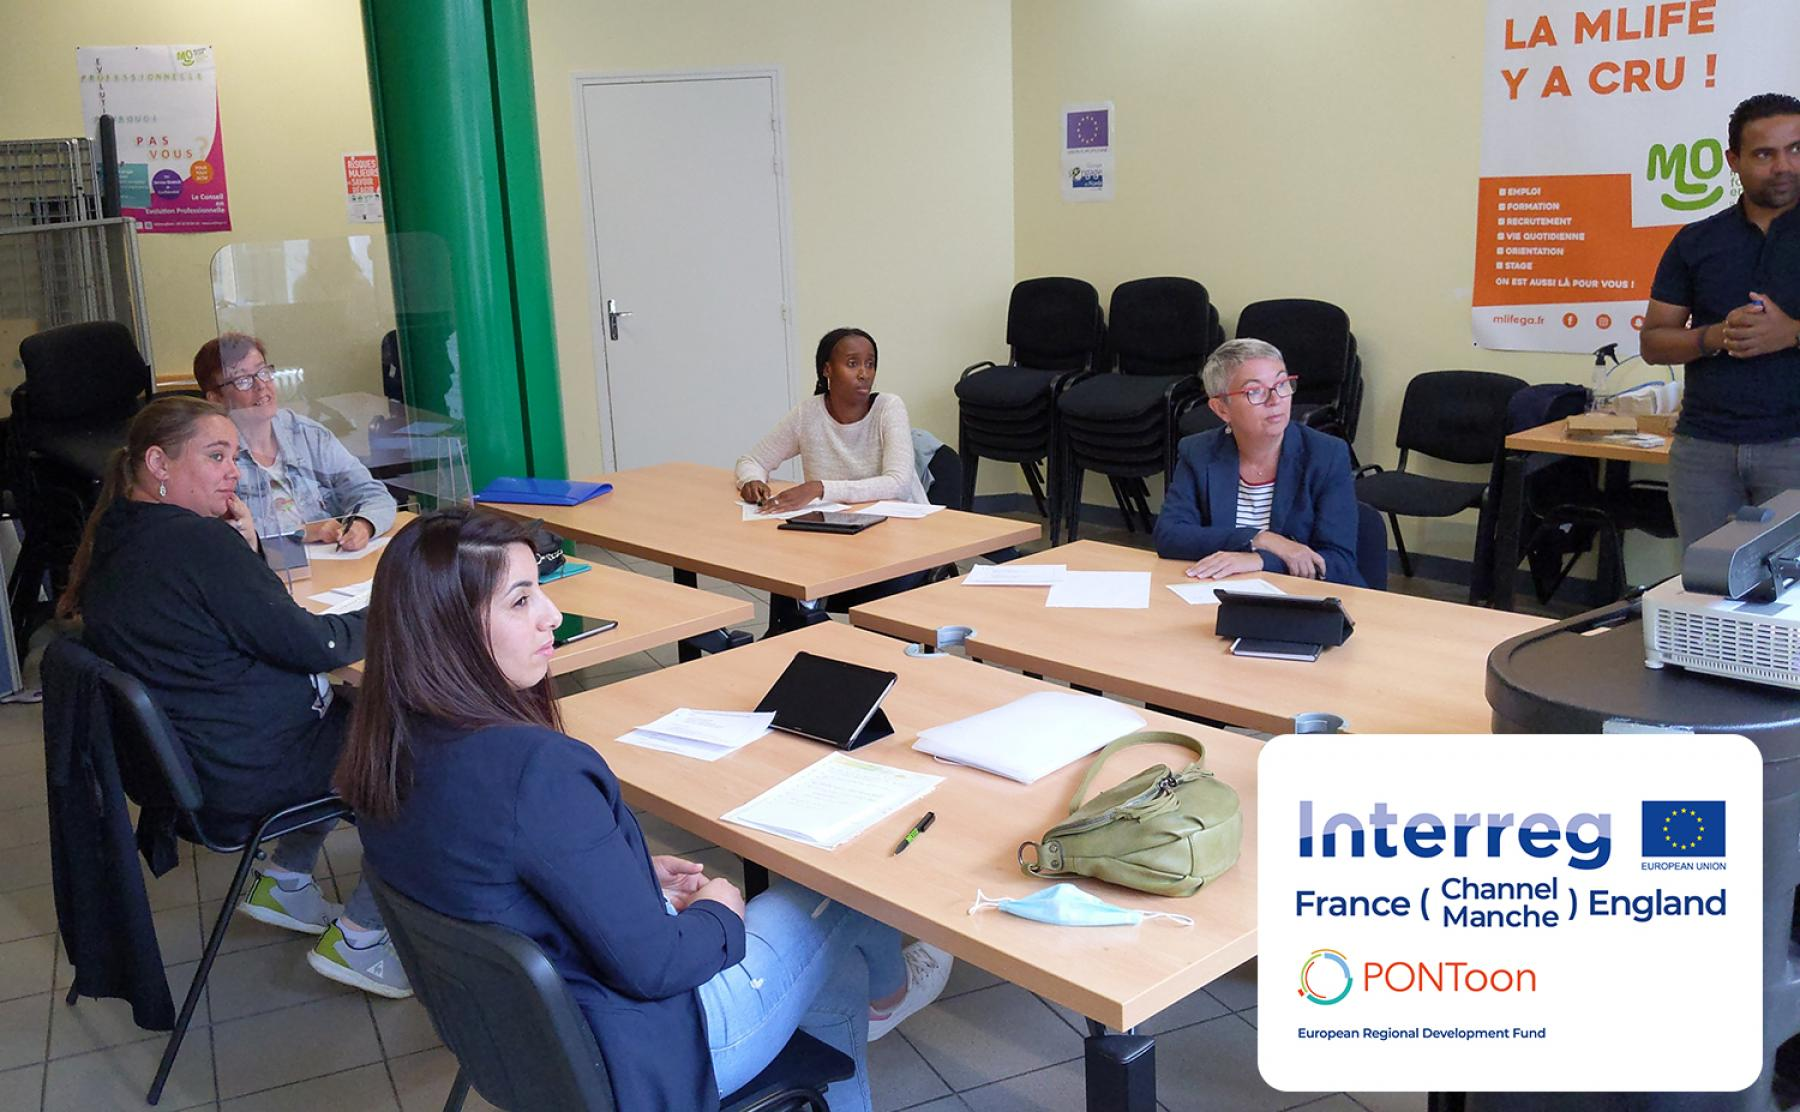 A group of Amiens Métropole beneficiaries trial the PONToon digital tools with trainers from Mission Locale